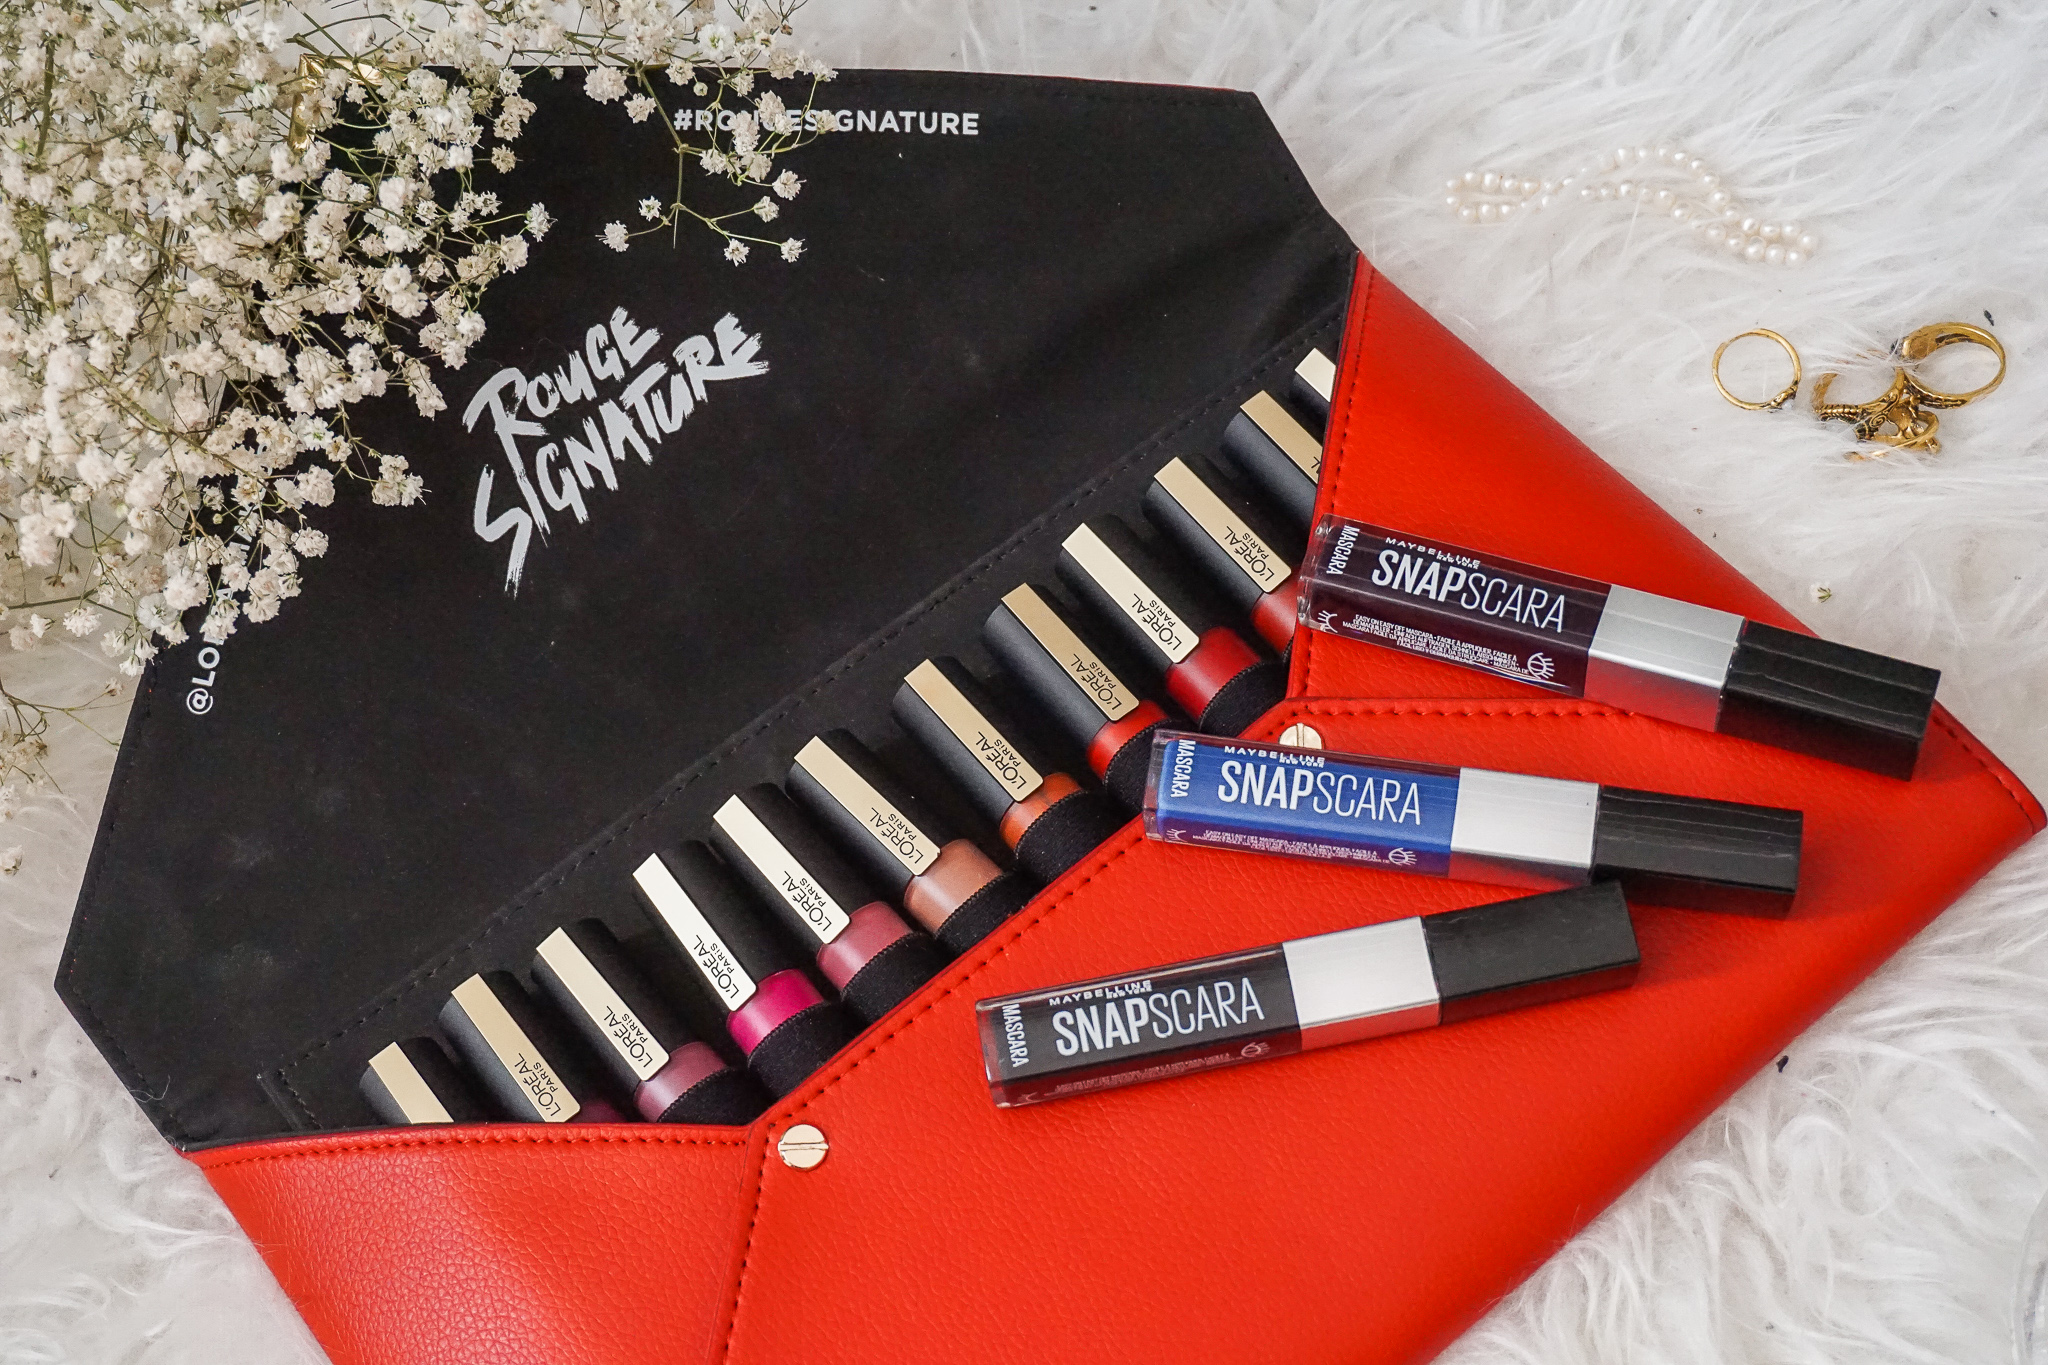 Makeup L'oreal rouge signature ink maybellin Snapscara